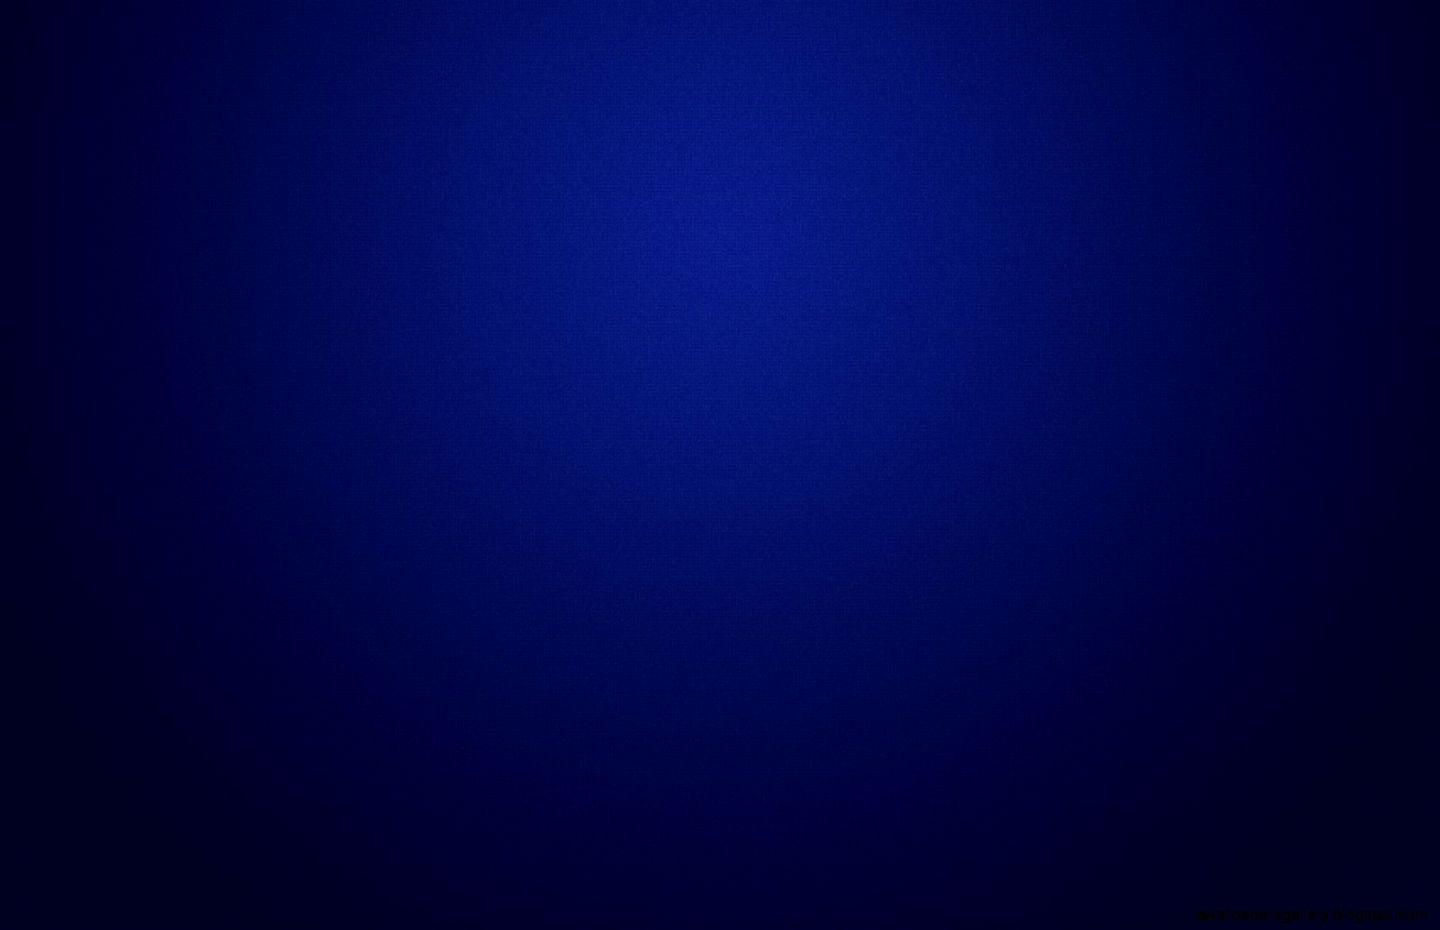 Free Dark Blue Background Wallpapers Gallery